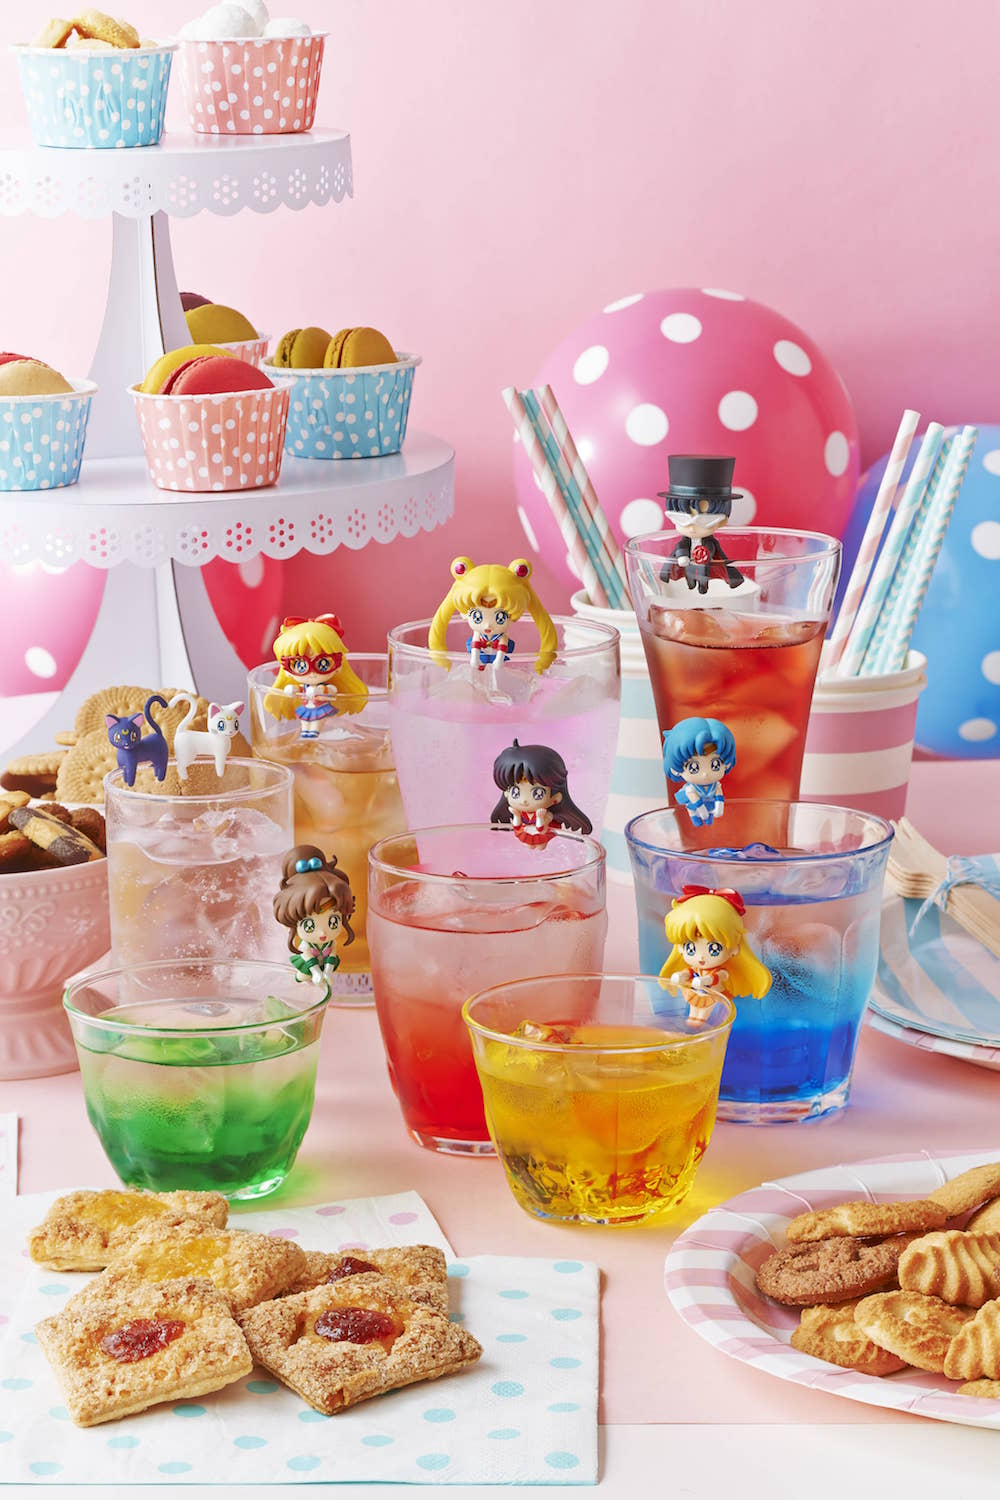 MOON PRISM CAFE DISPLAY 8 MINI FIGURAS 5 CM PRETTY SOLDIER SERIE OCHATOMO